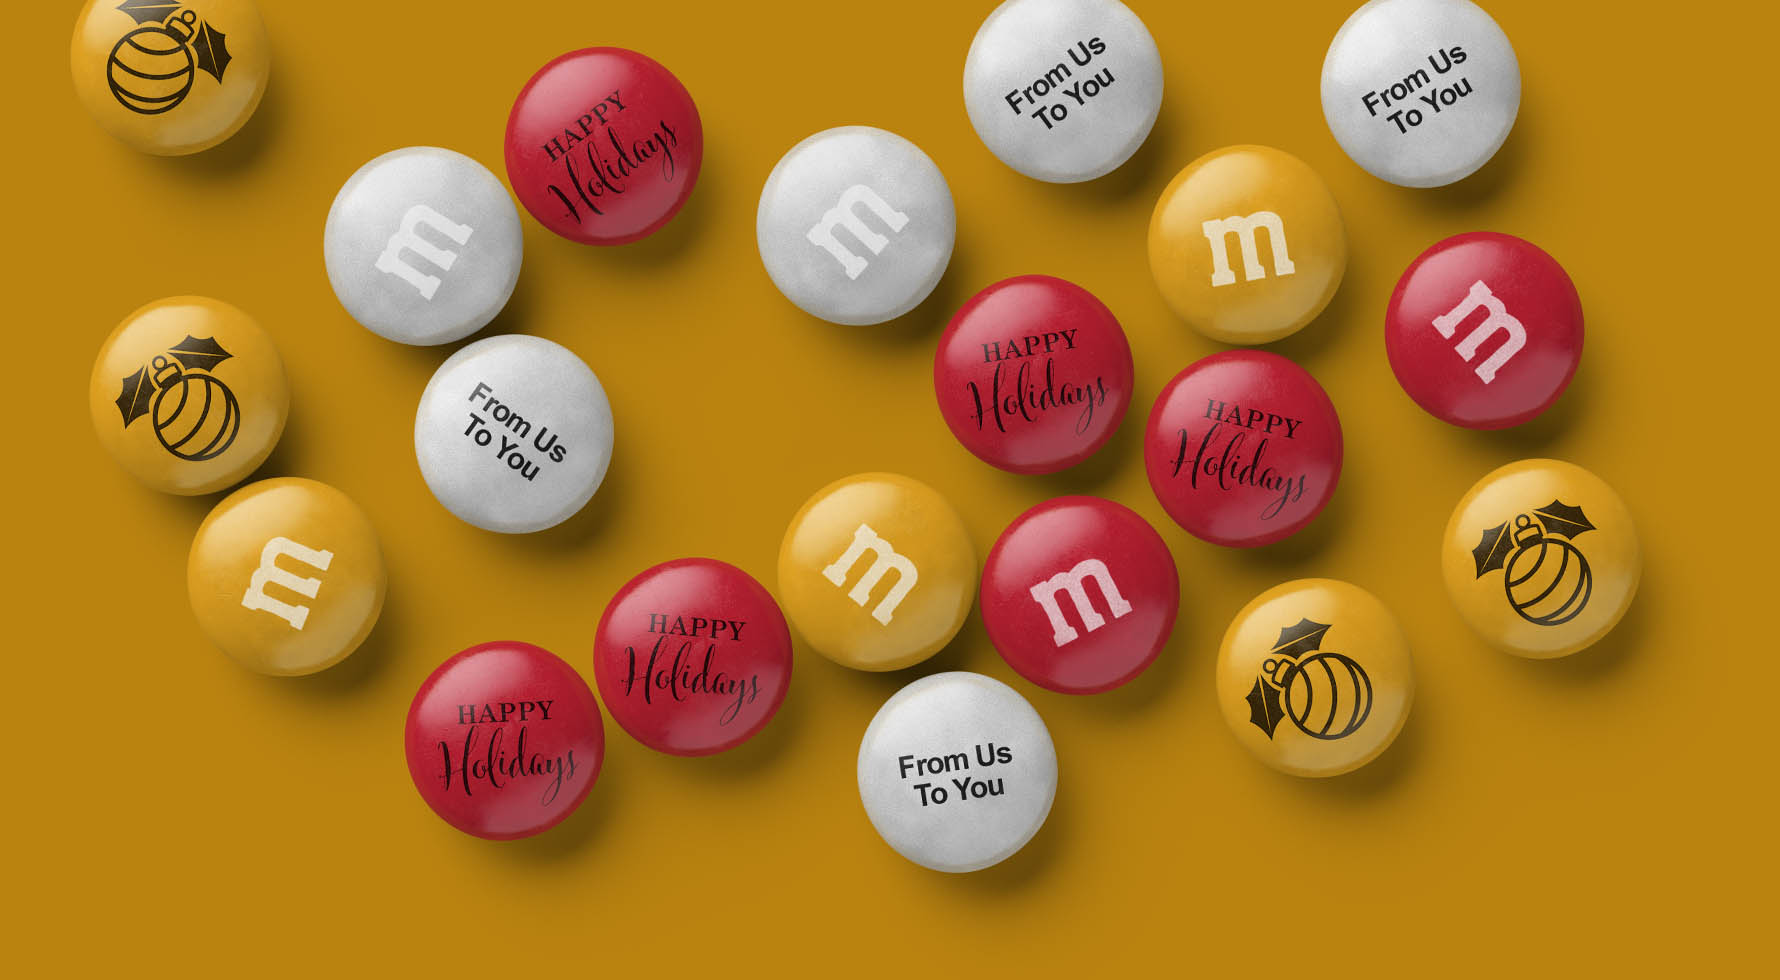 A spill of personalized Holiday-themed M&M'S